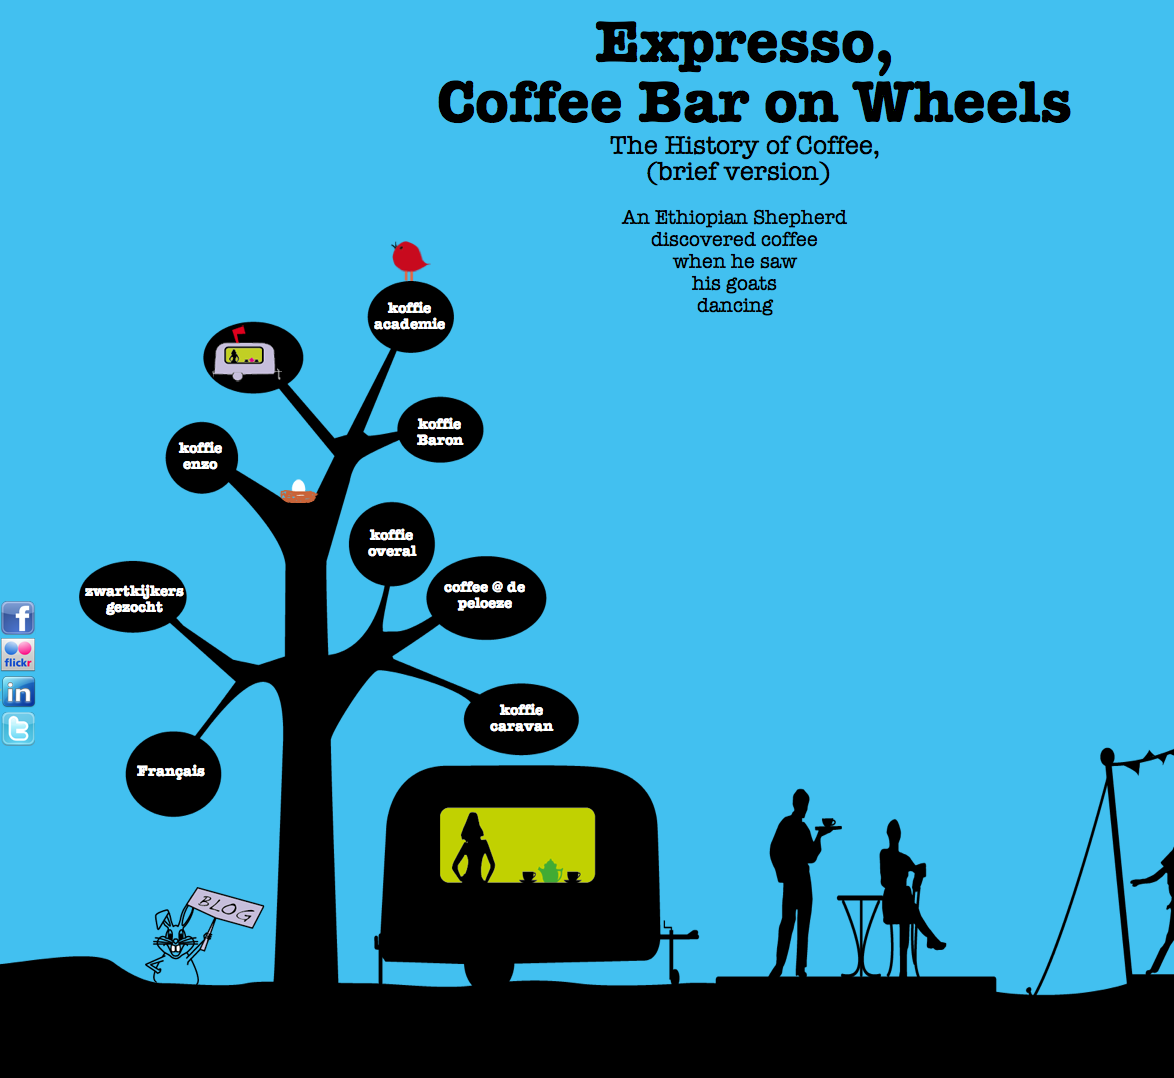 coffee bar onwheels pic 1